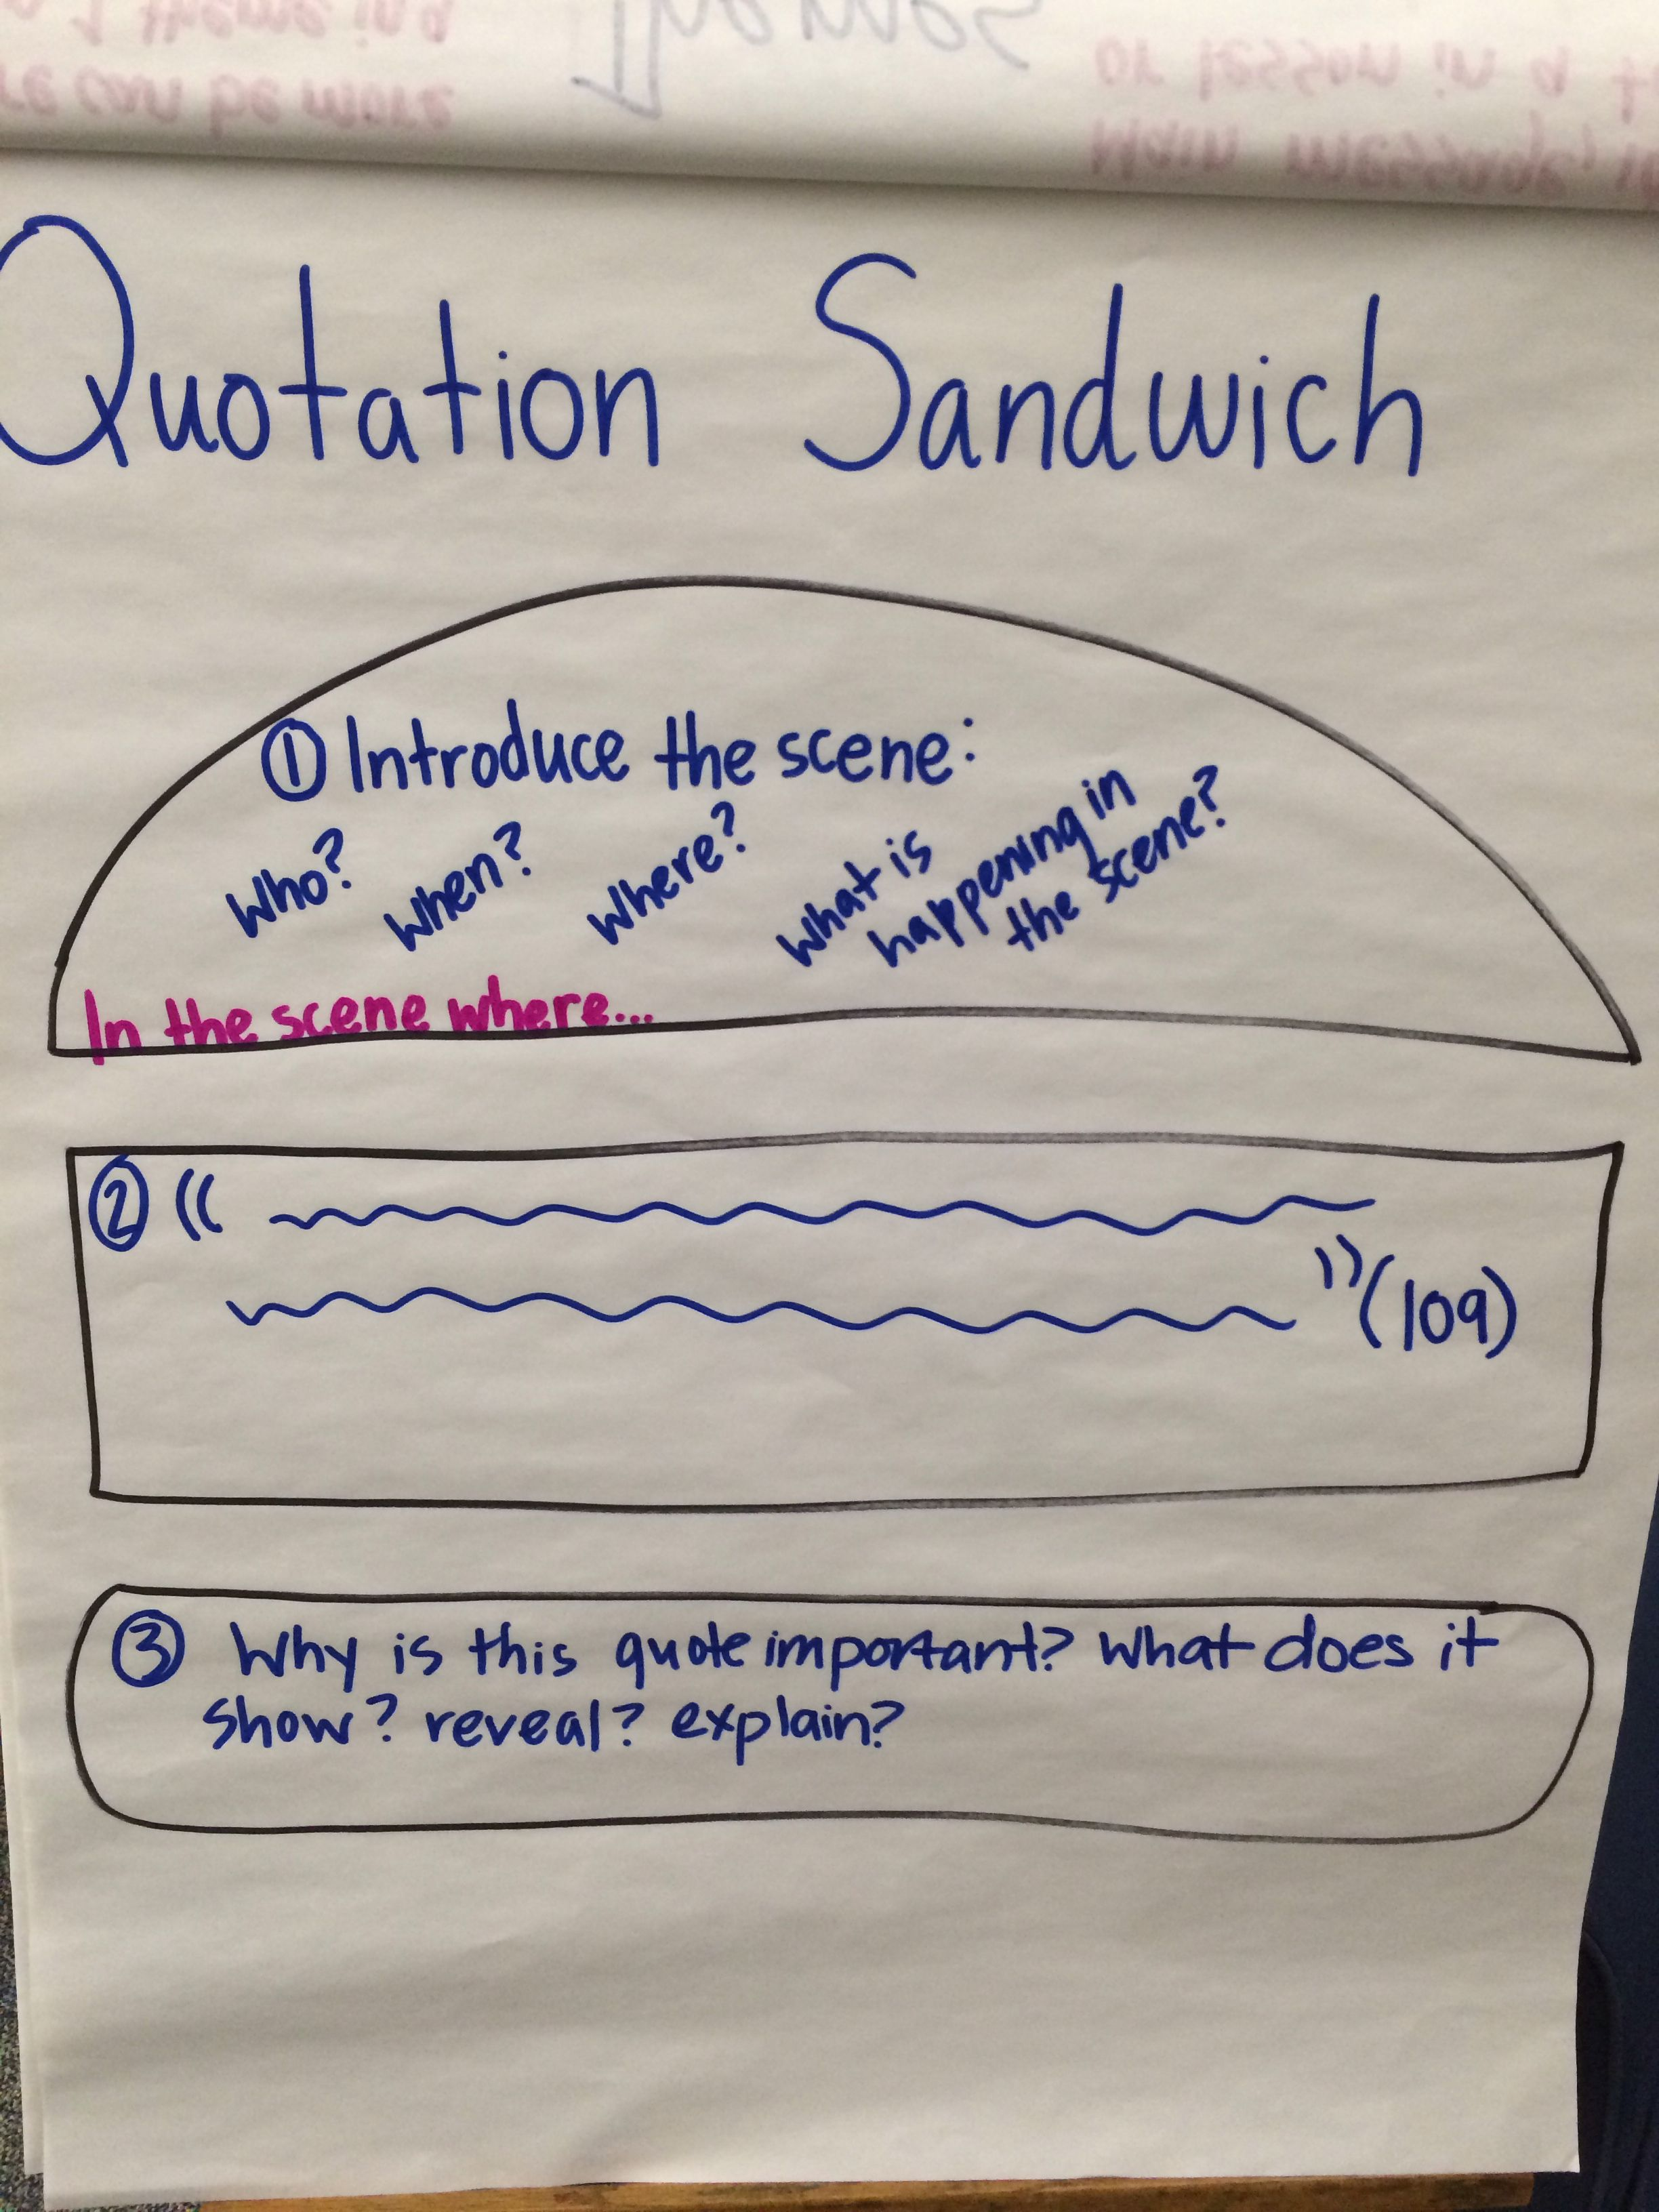 Quotation Sandwich Chart